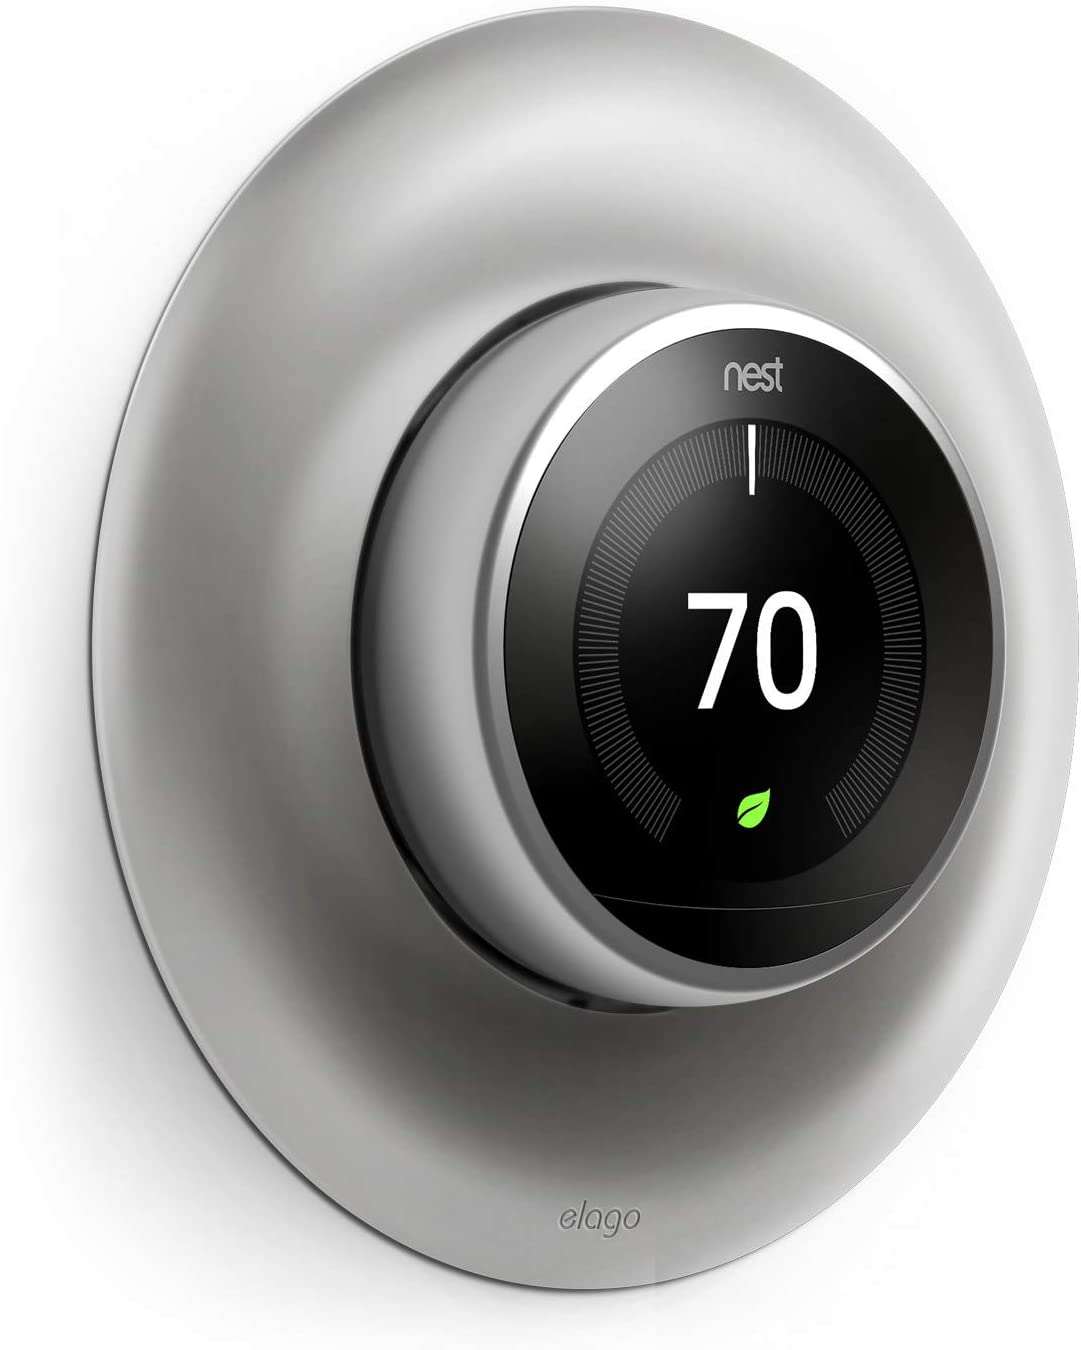 elago Wall Plate Cover Designed for Google Nest Learning Thermostat (Stainless Steel Color) - Compatible with Nest Learning Thermostat 1st/2nd/3rd Generation [US Patent Registered]